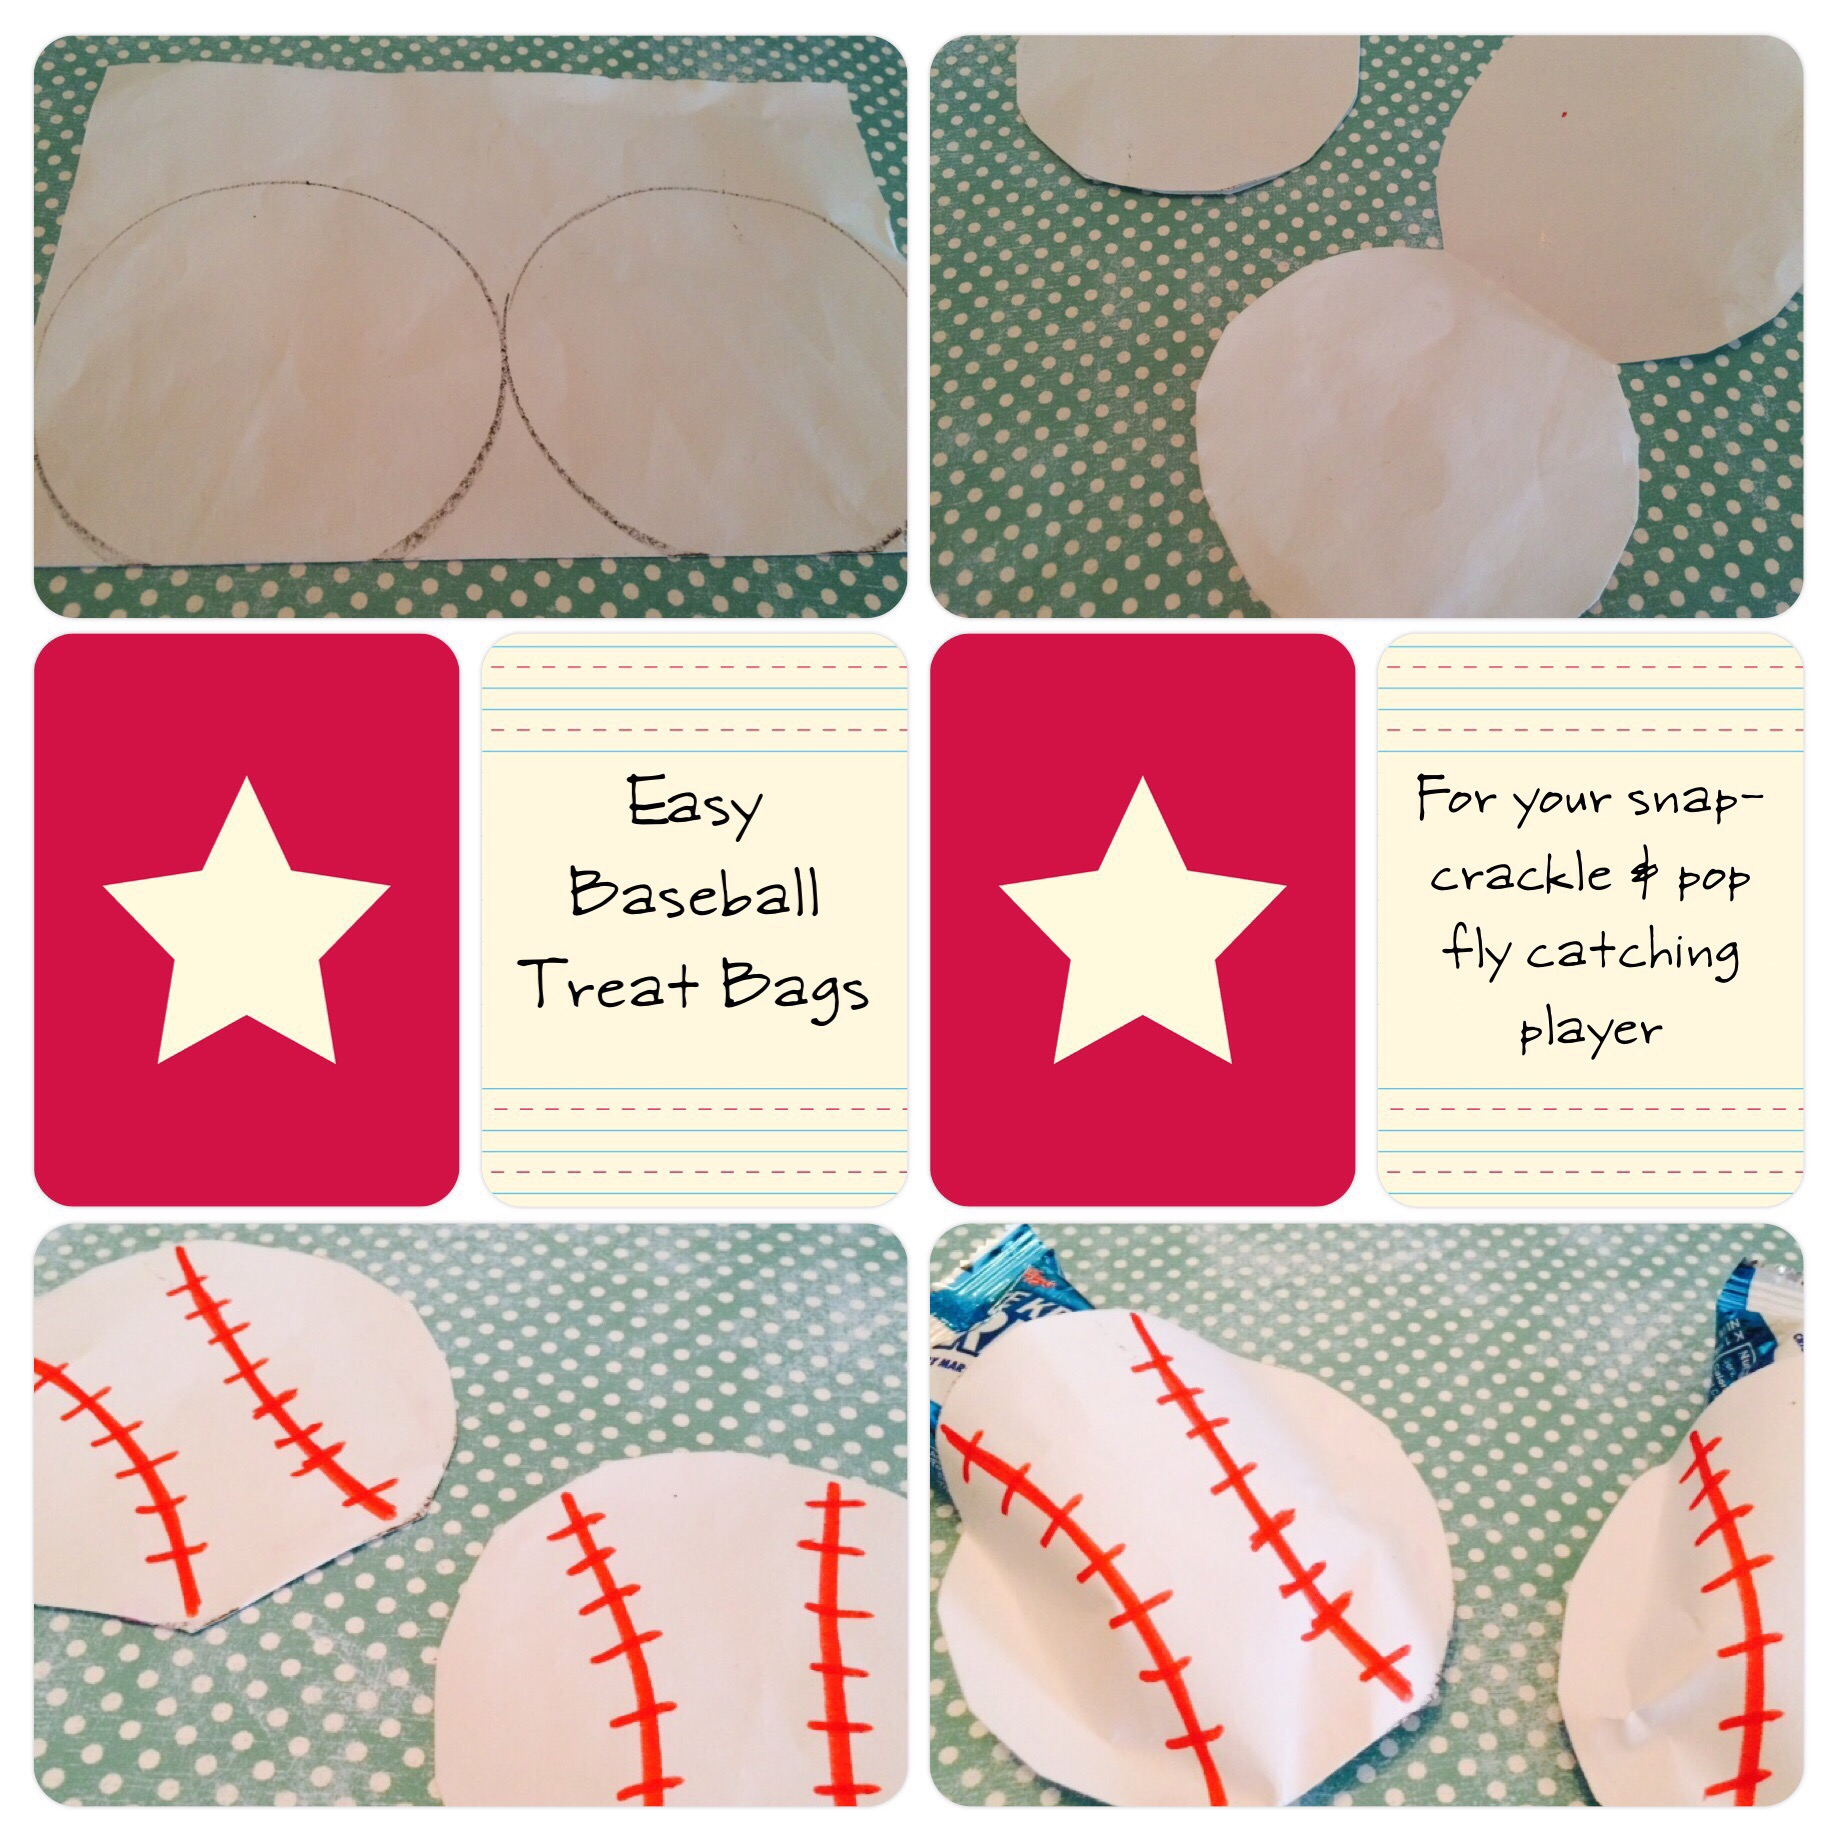 Easy Baseball Treat Bags with printable